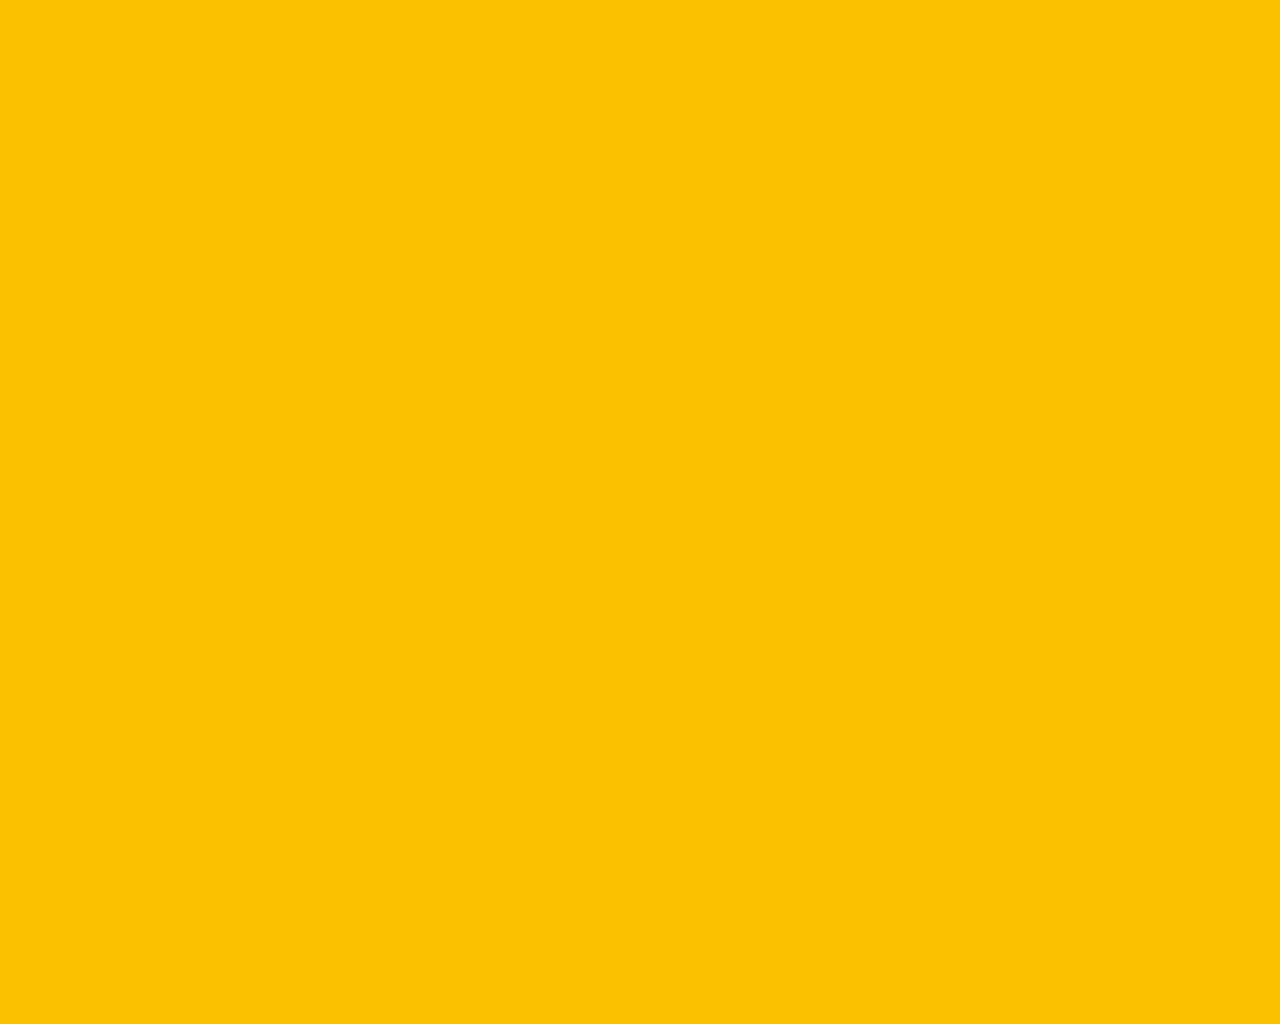 1280x1024 Golden Poppy Solid Color Background